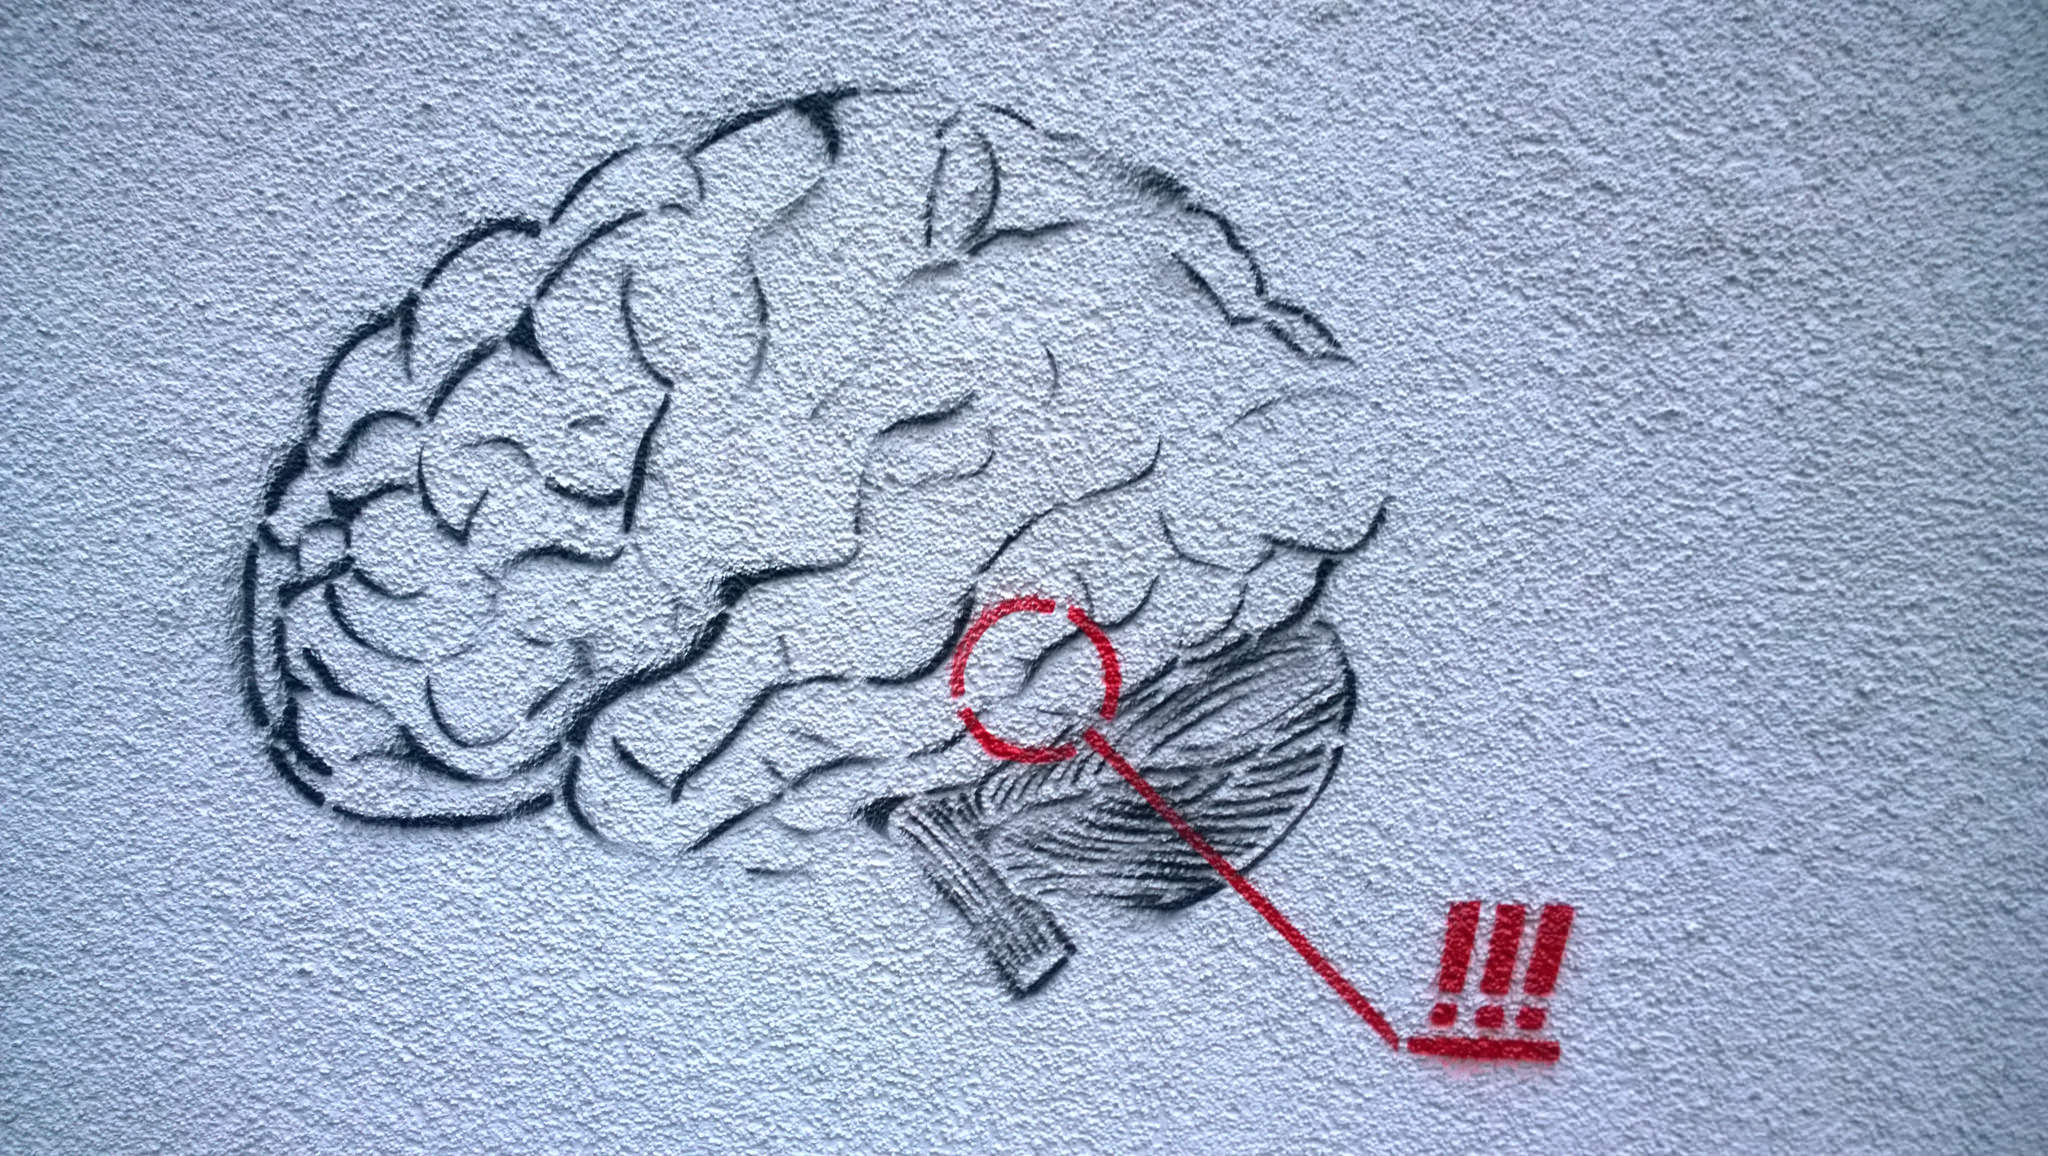 Neuro-Learning? Vergiss es! #hrmmythbusters - Personaleum